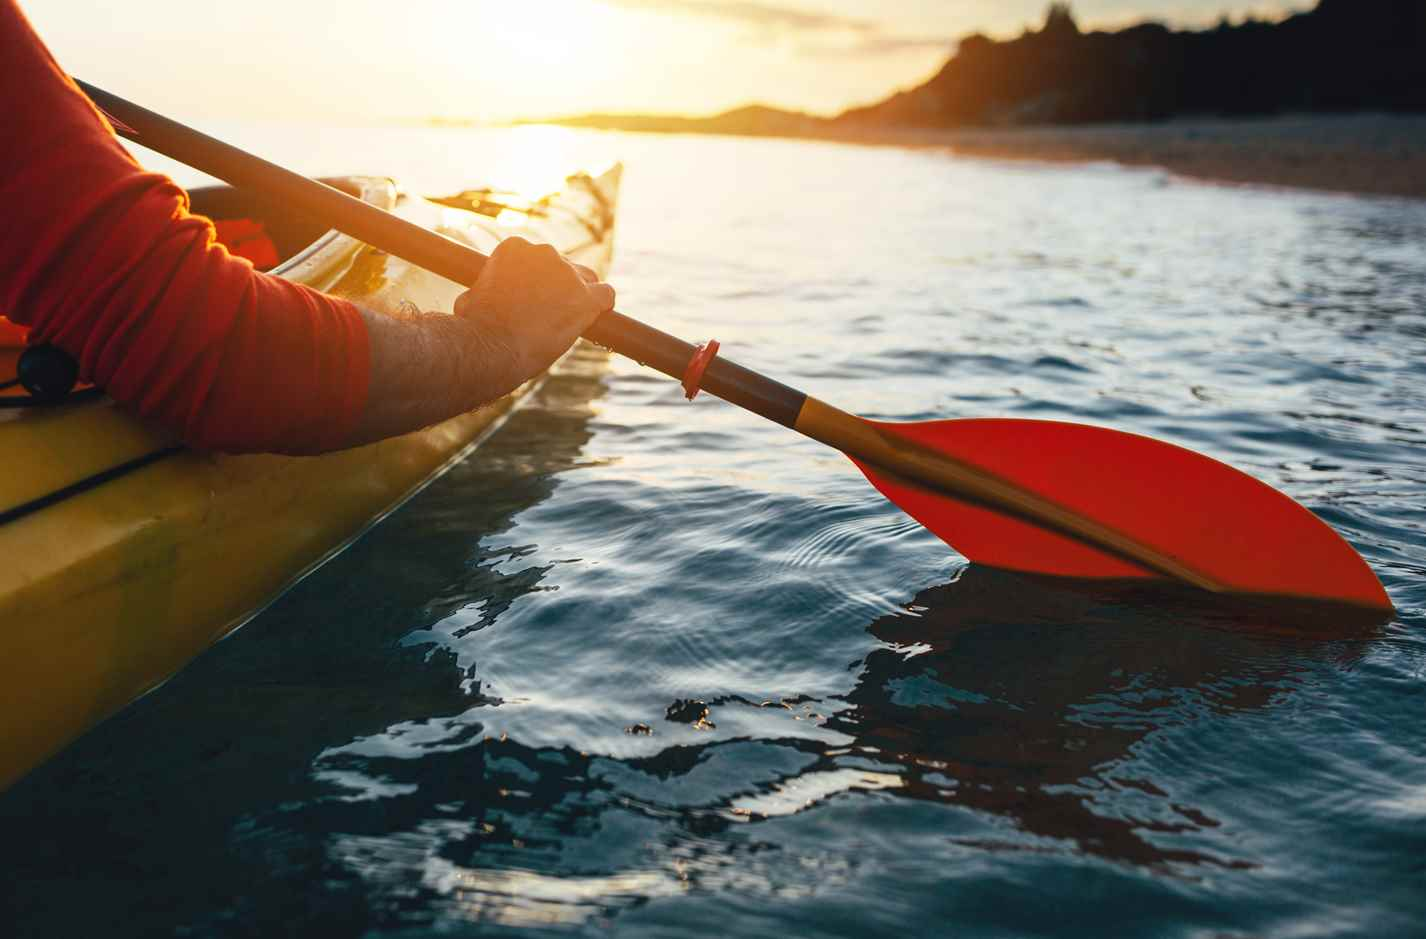 Tips For Buying The Best Earplugs For Your Next Kayaking Trip